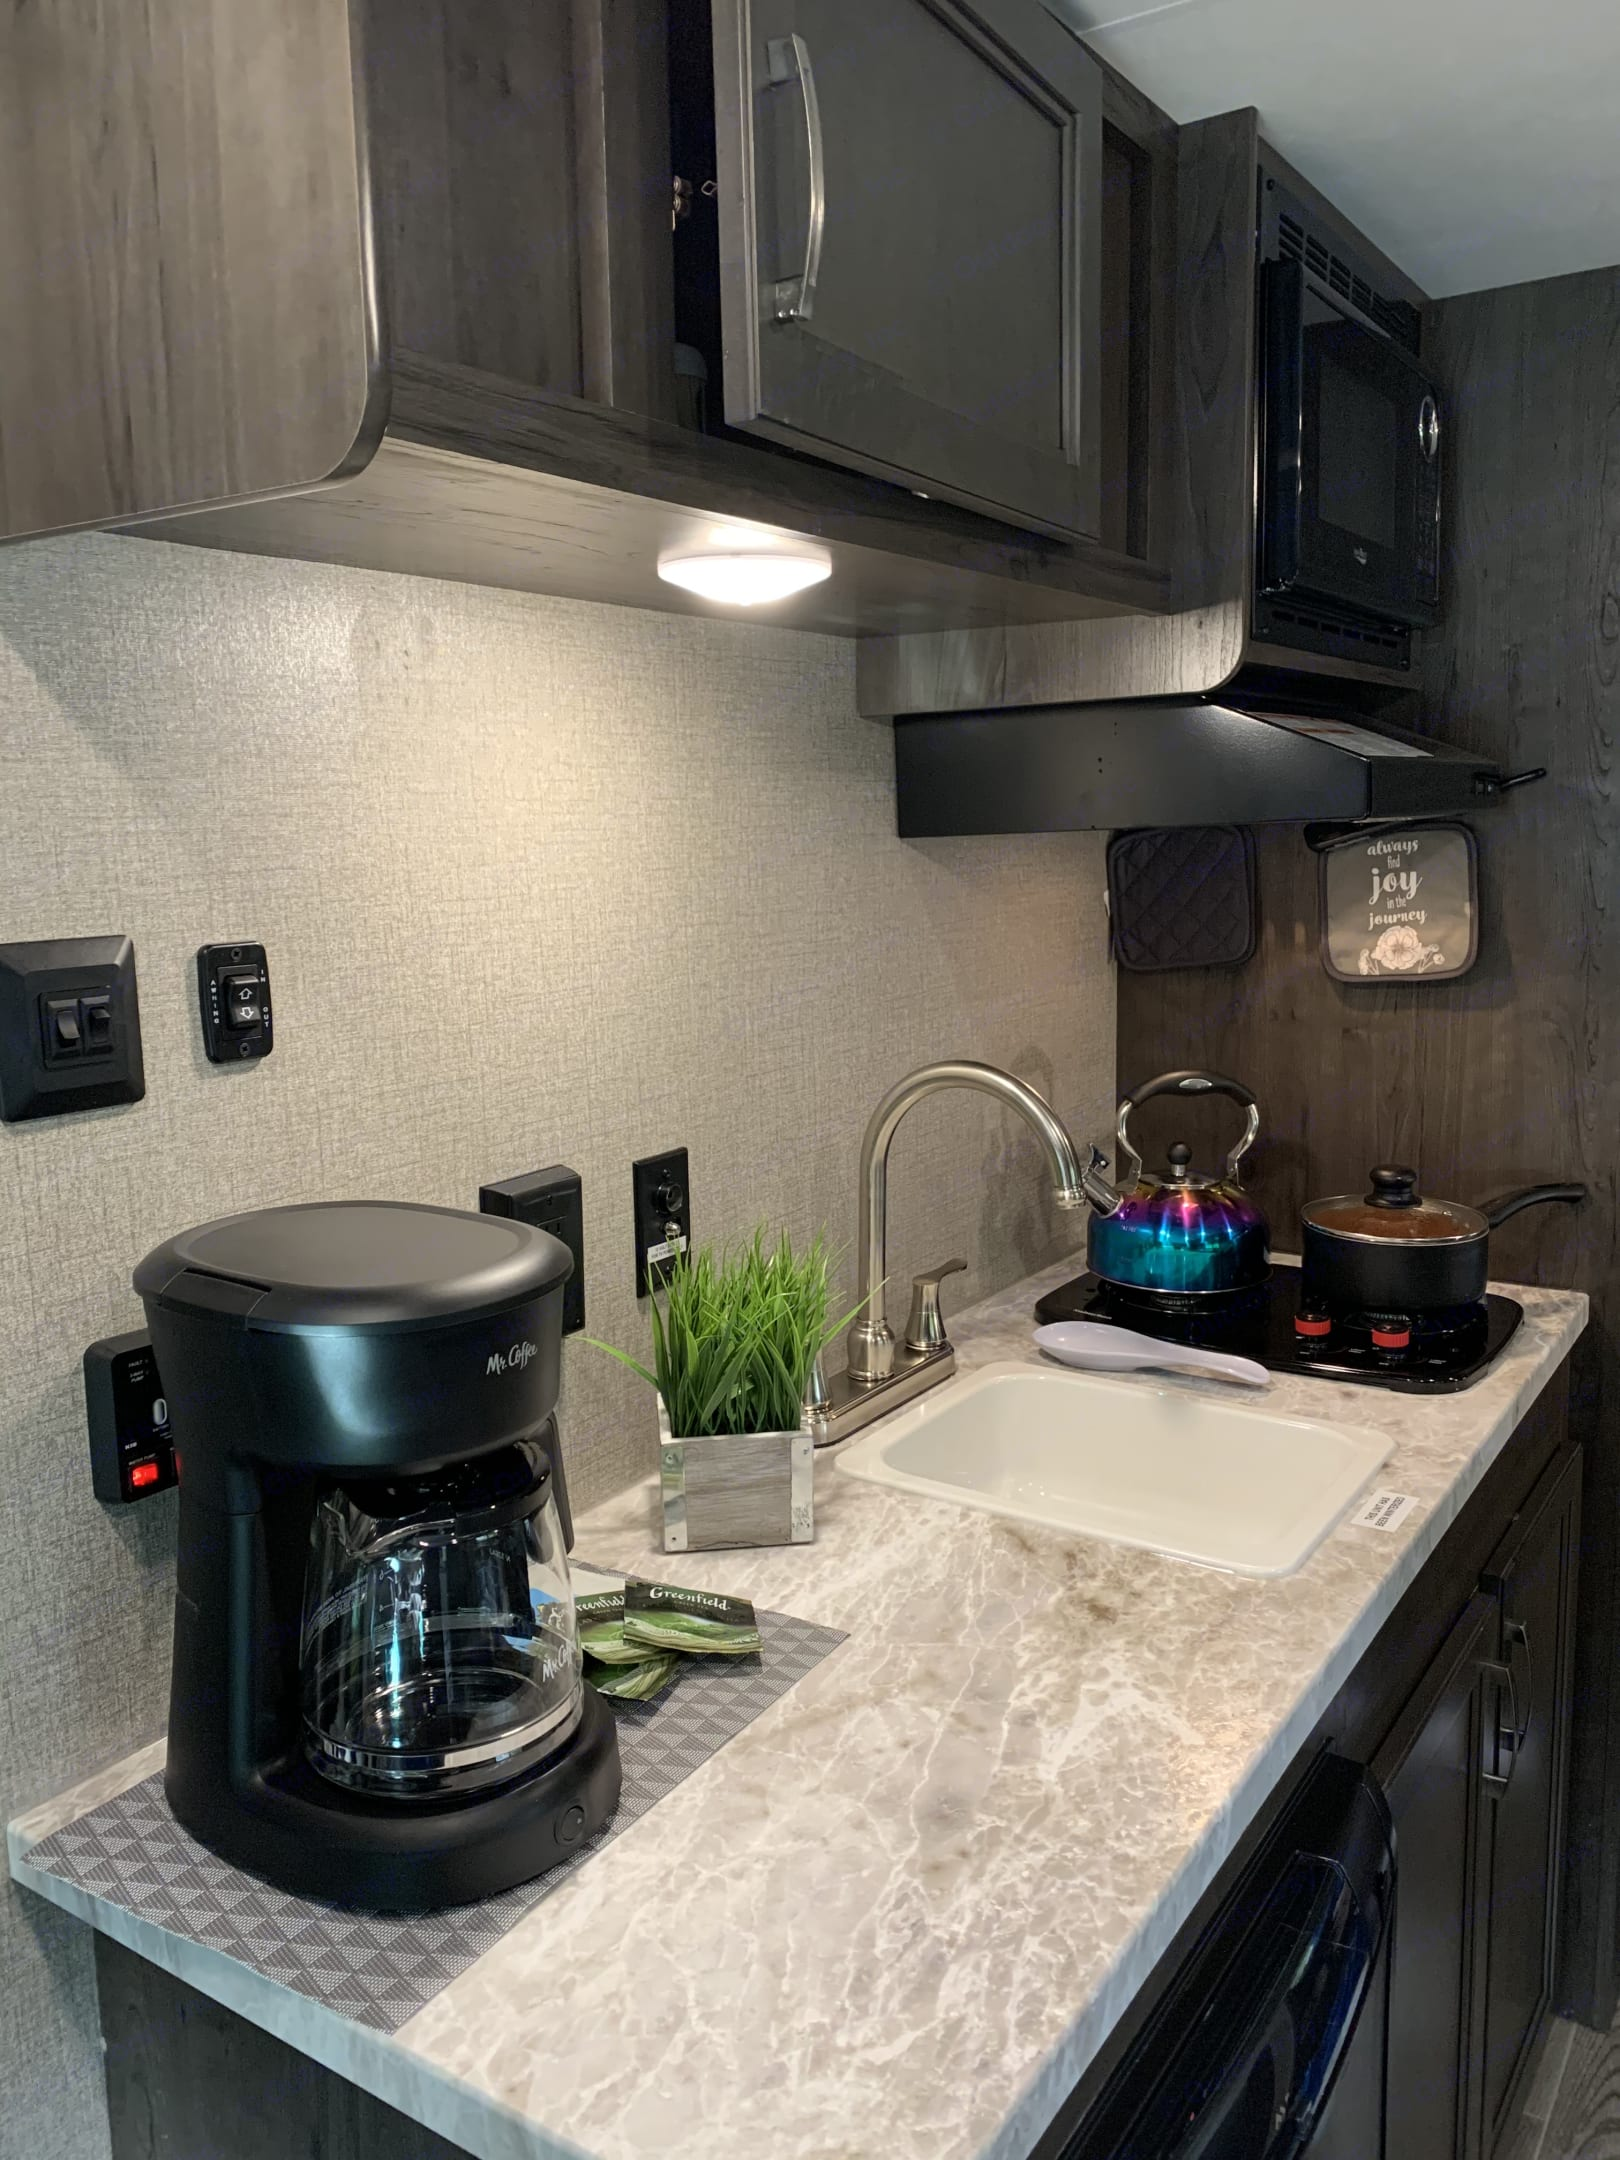 We take care about all kitchen items! Hot coffee or tea in the morning - nothing could be more easy!. Jayco Flight 2021